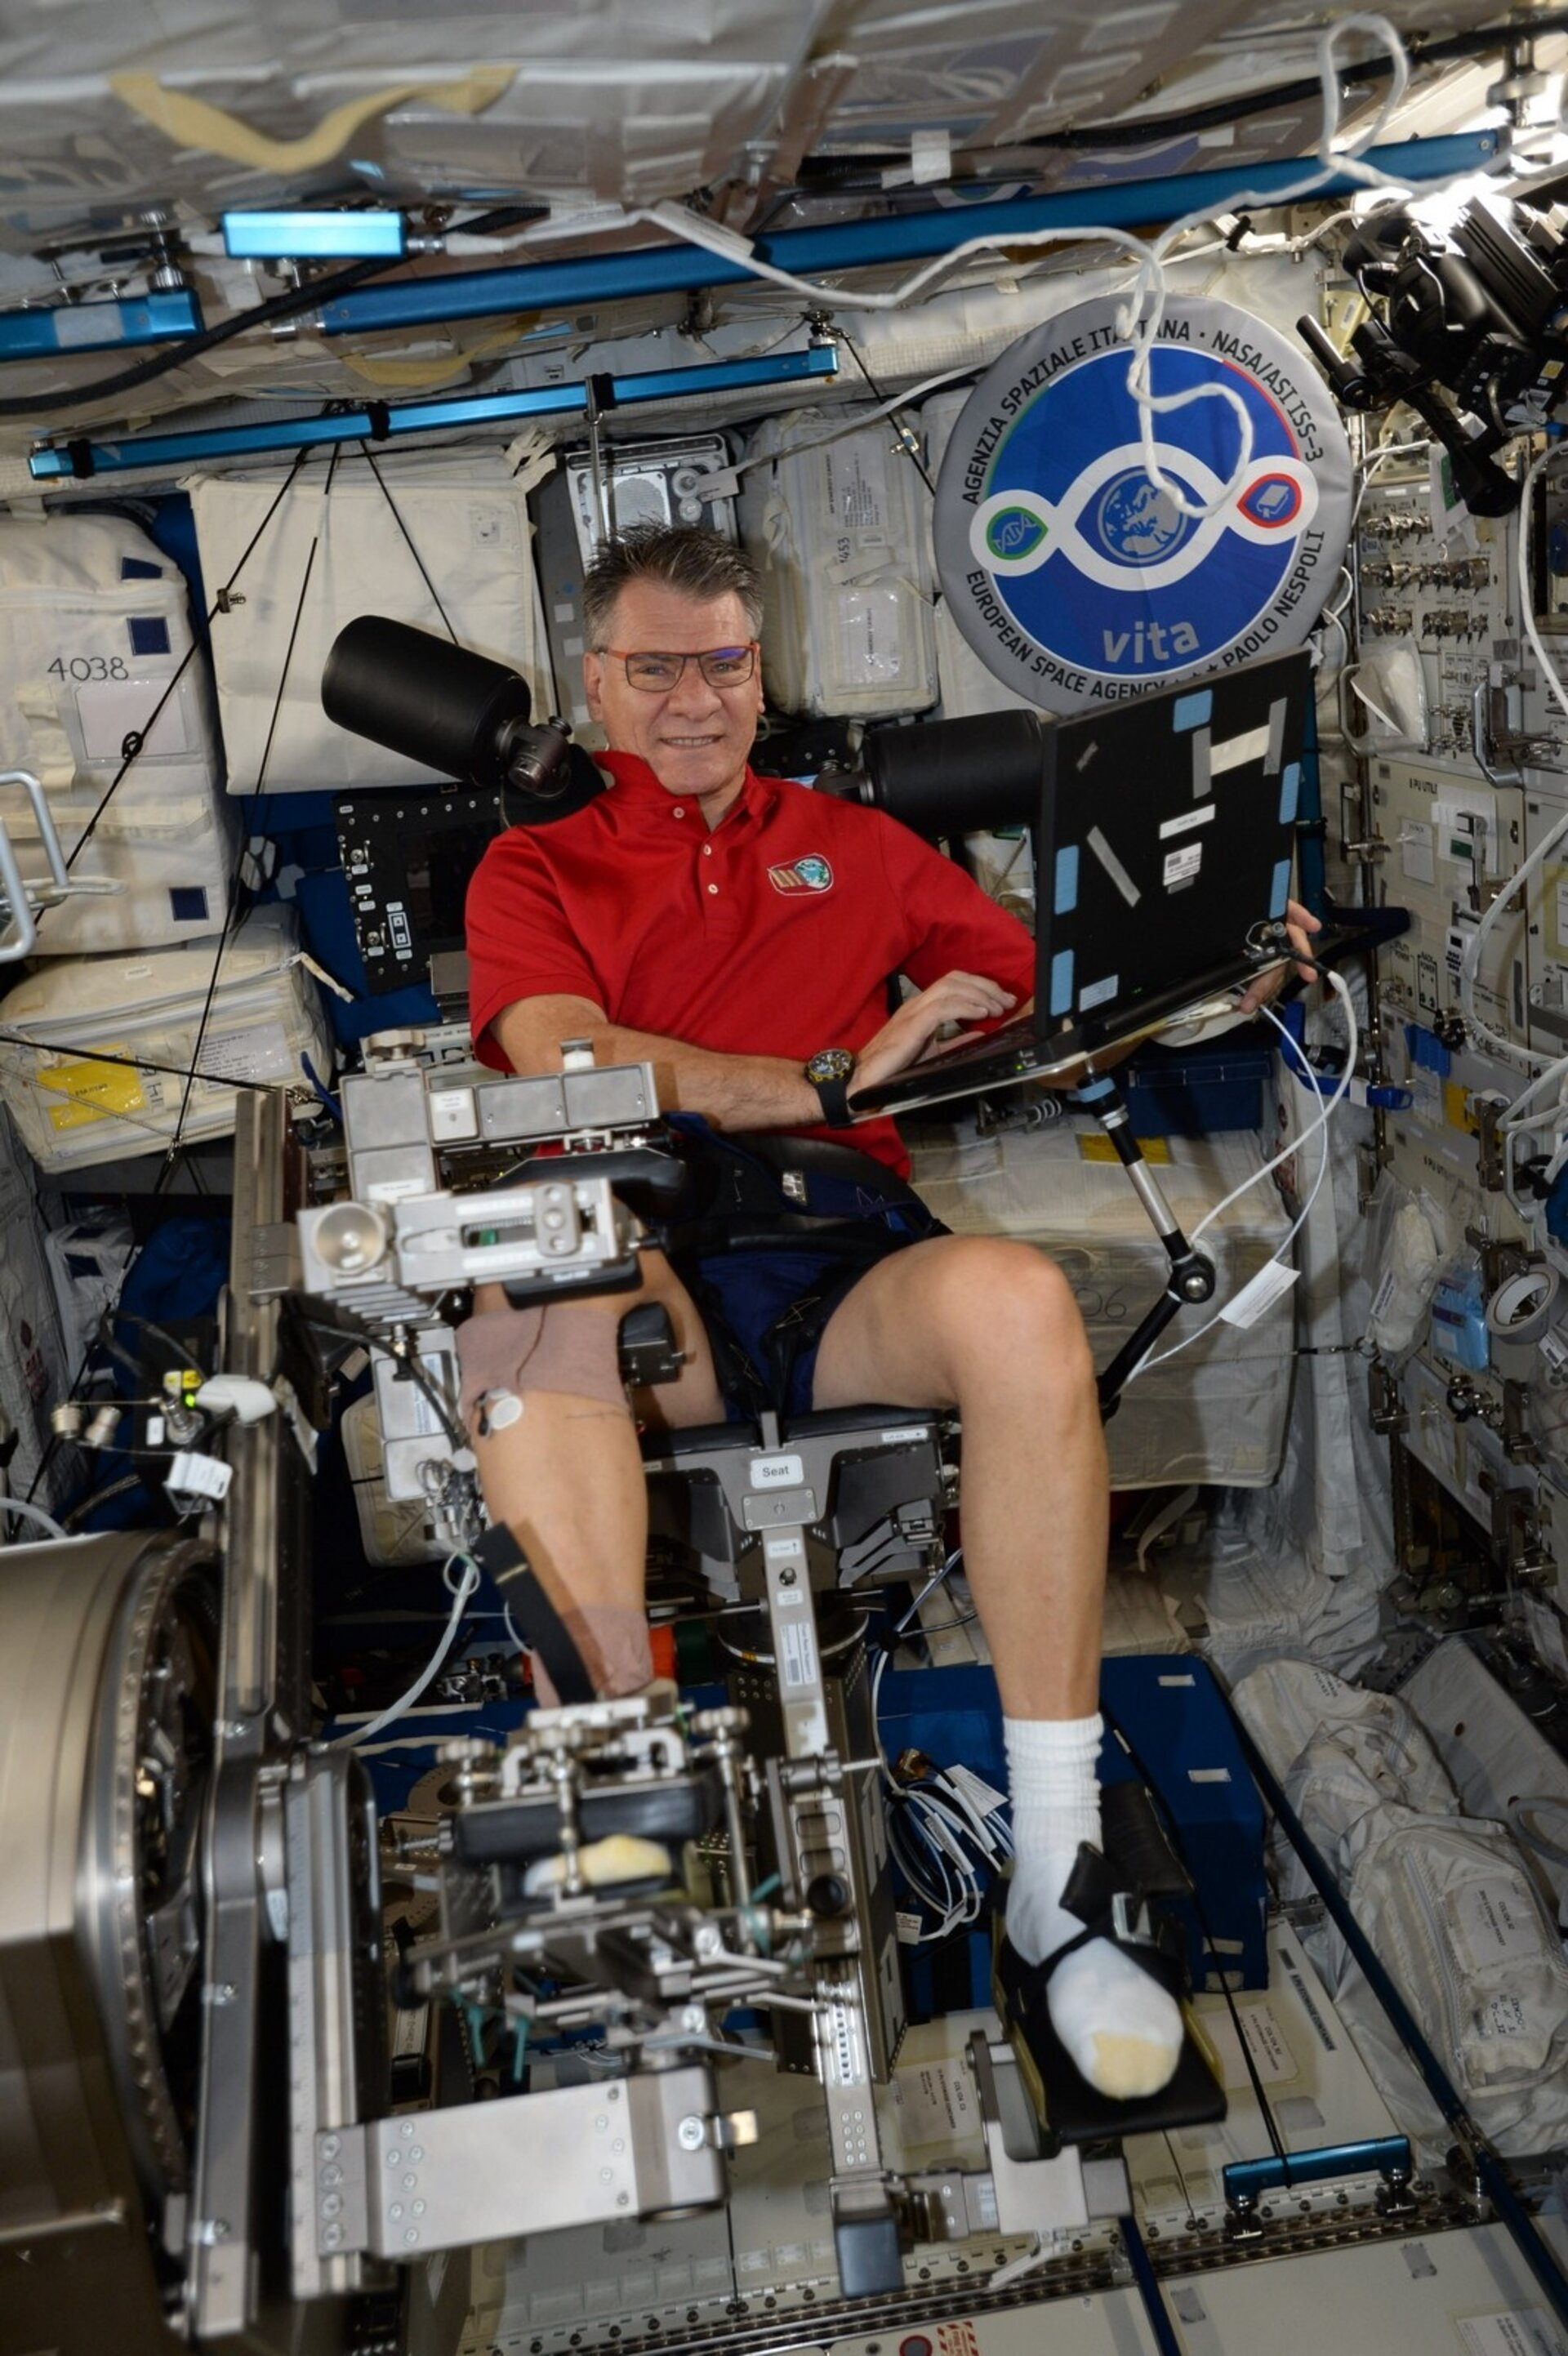 Paolo Nespoli uses the Mares machine